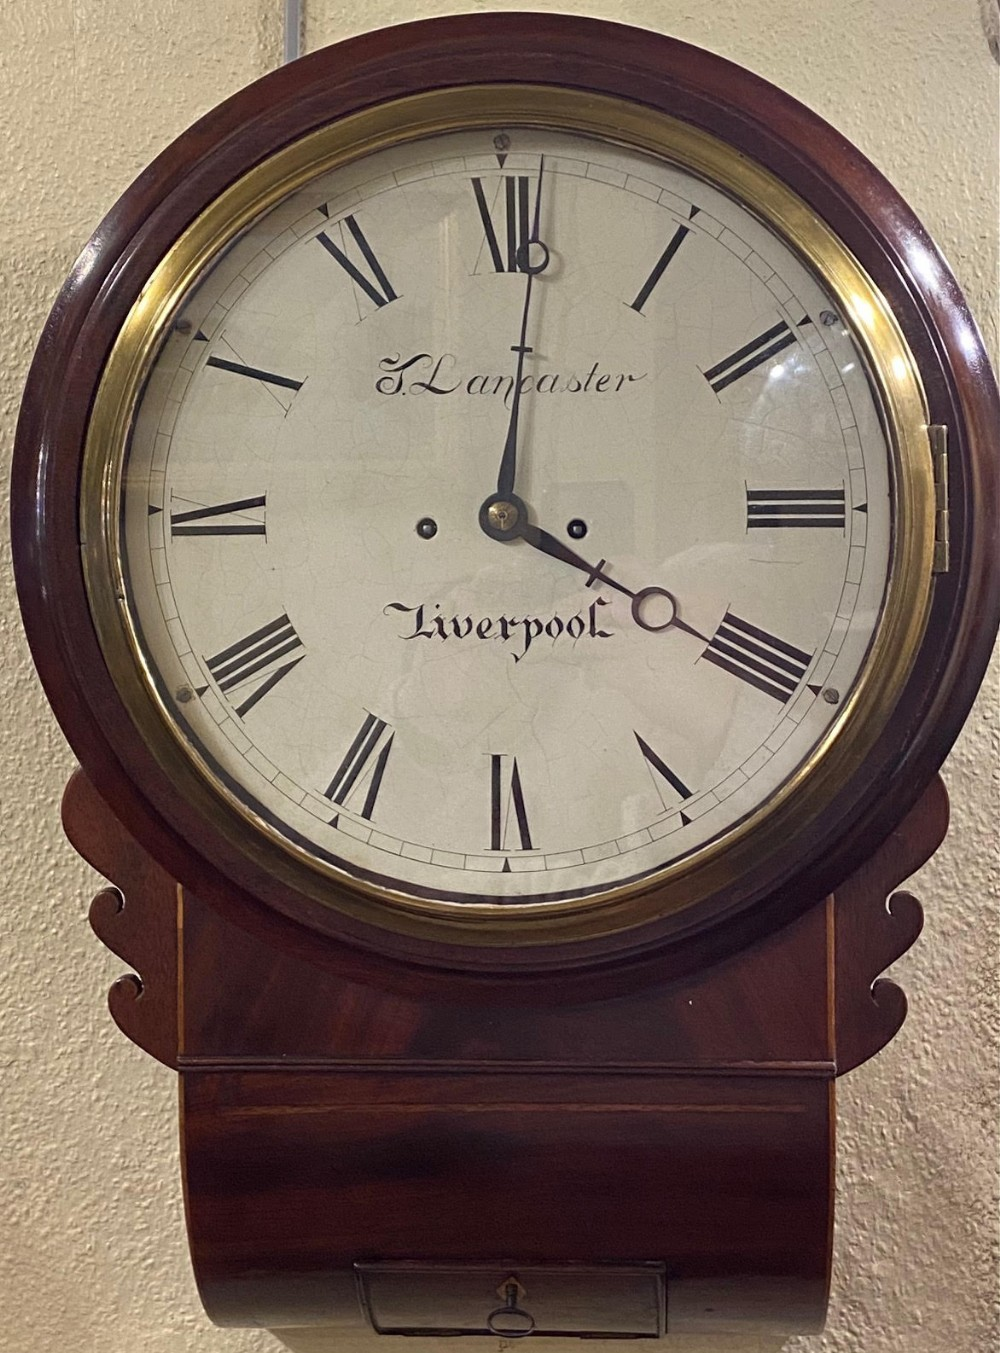 twinfusee mahogany drop dial 'striking' wall clock by t lancaster of liverpool